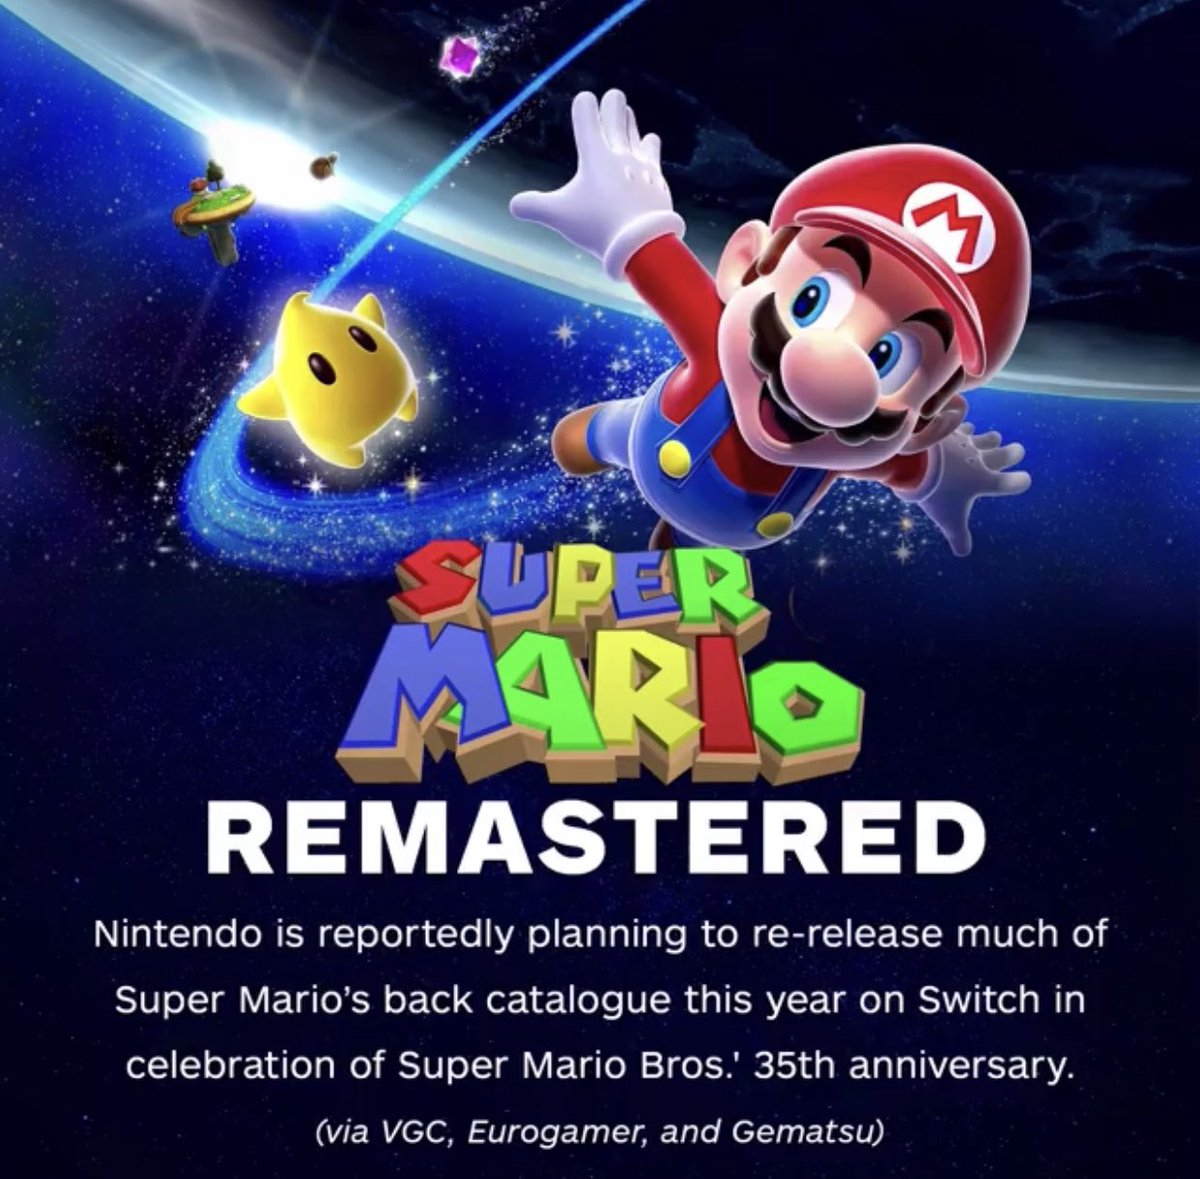 These rumored #Mario games coming in 2020 may include remasters of #Mario64, #MarioSunshine, #MarioGalaxy, and 3D World, as well as a new entry in the Paper Mario series. #NintendoSwitchpic.twitter.com/xX05r6jxvr